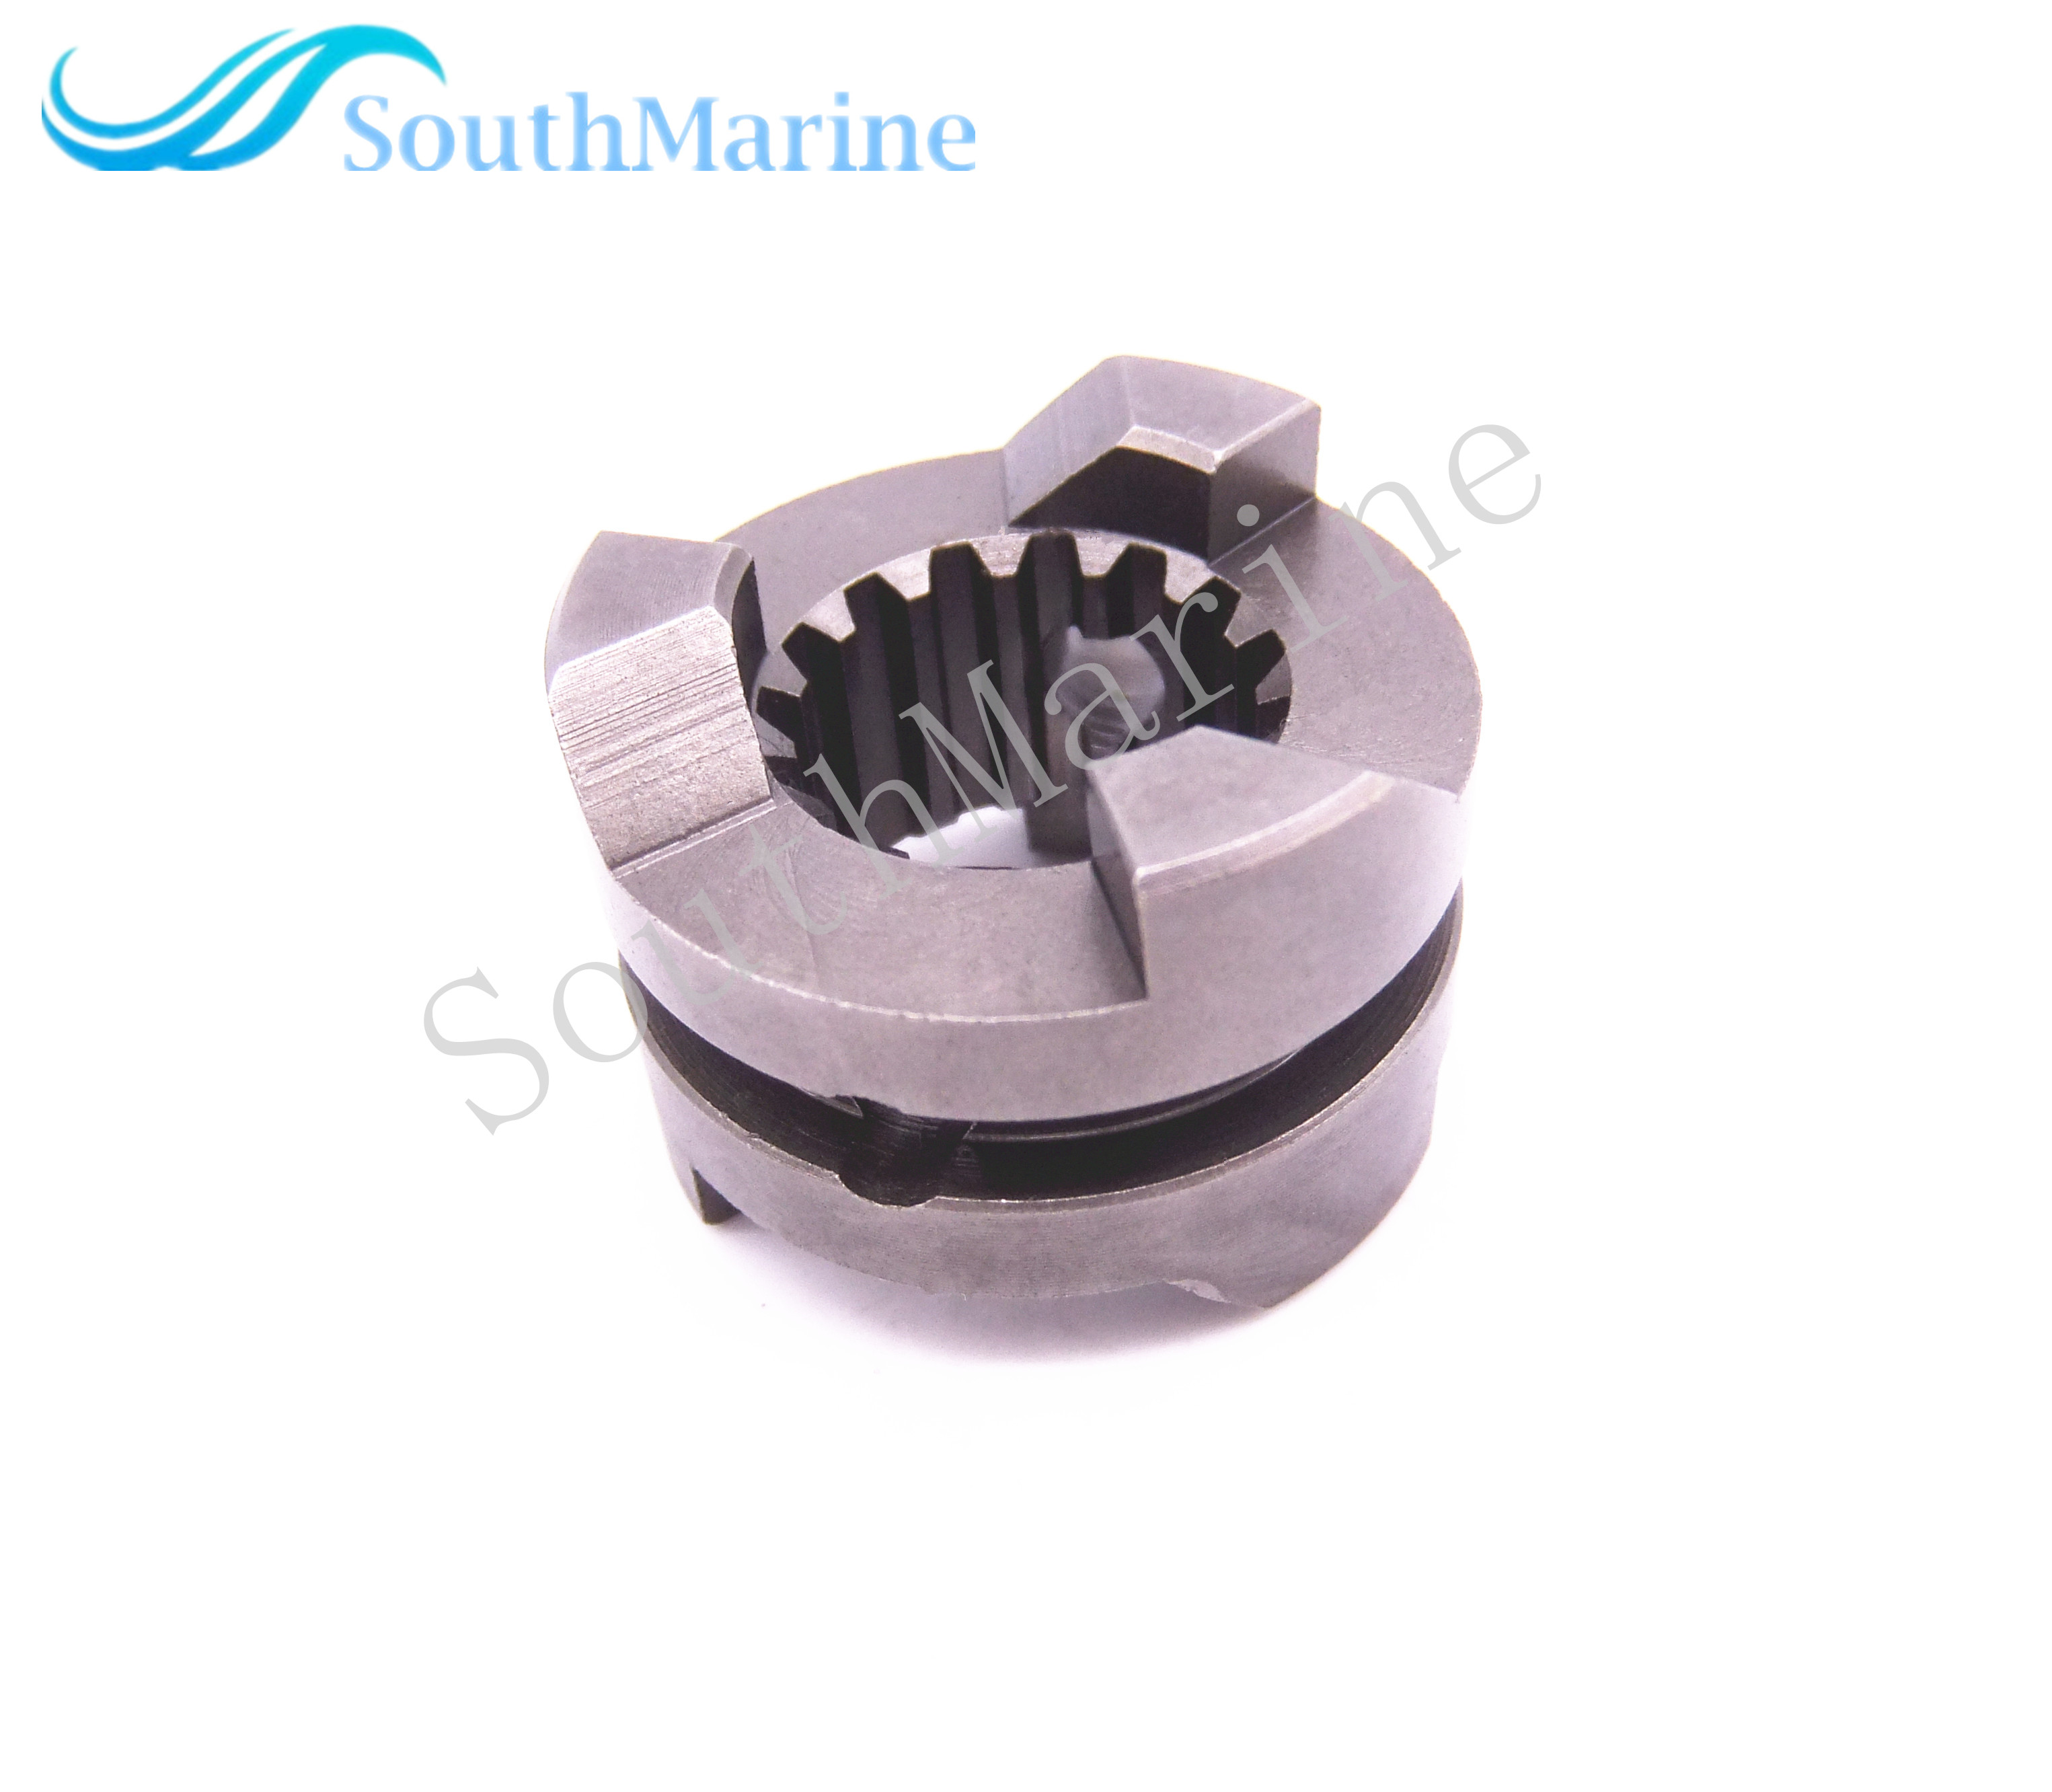 Boat Motor 3B2-64215-0 3B264-2150M Clutch Dog for Tohatsu Nissan Outboard Engine 2-stroke 6HP 8HP 9.8HP